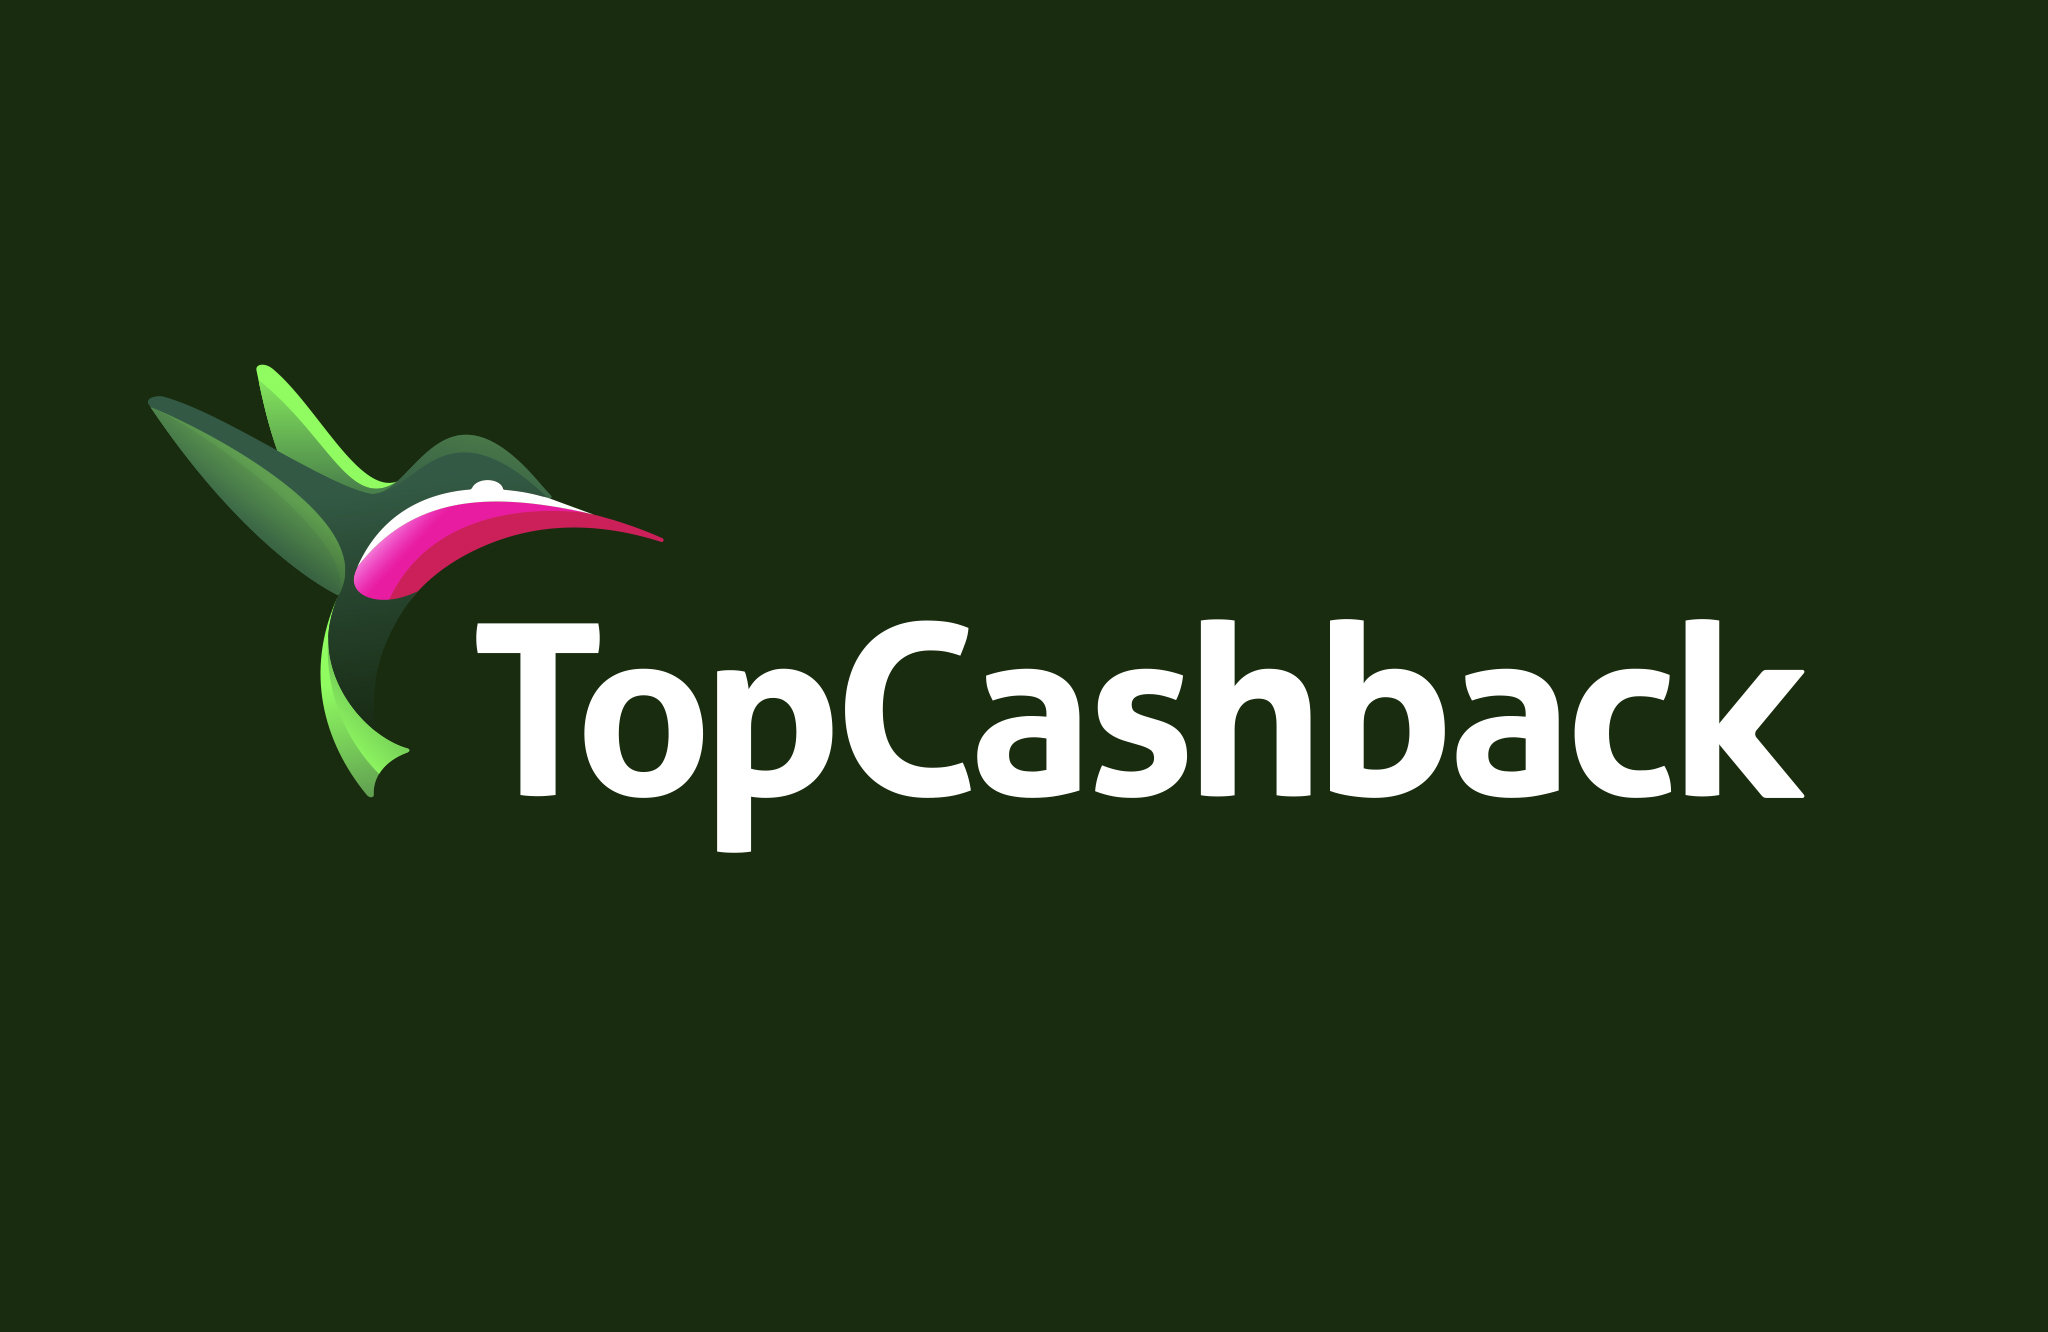 topcashback-ash-spurr_0008_Vector Smart Object